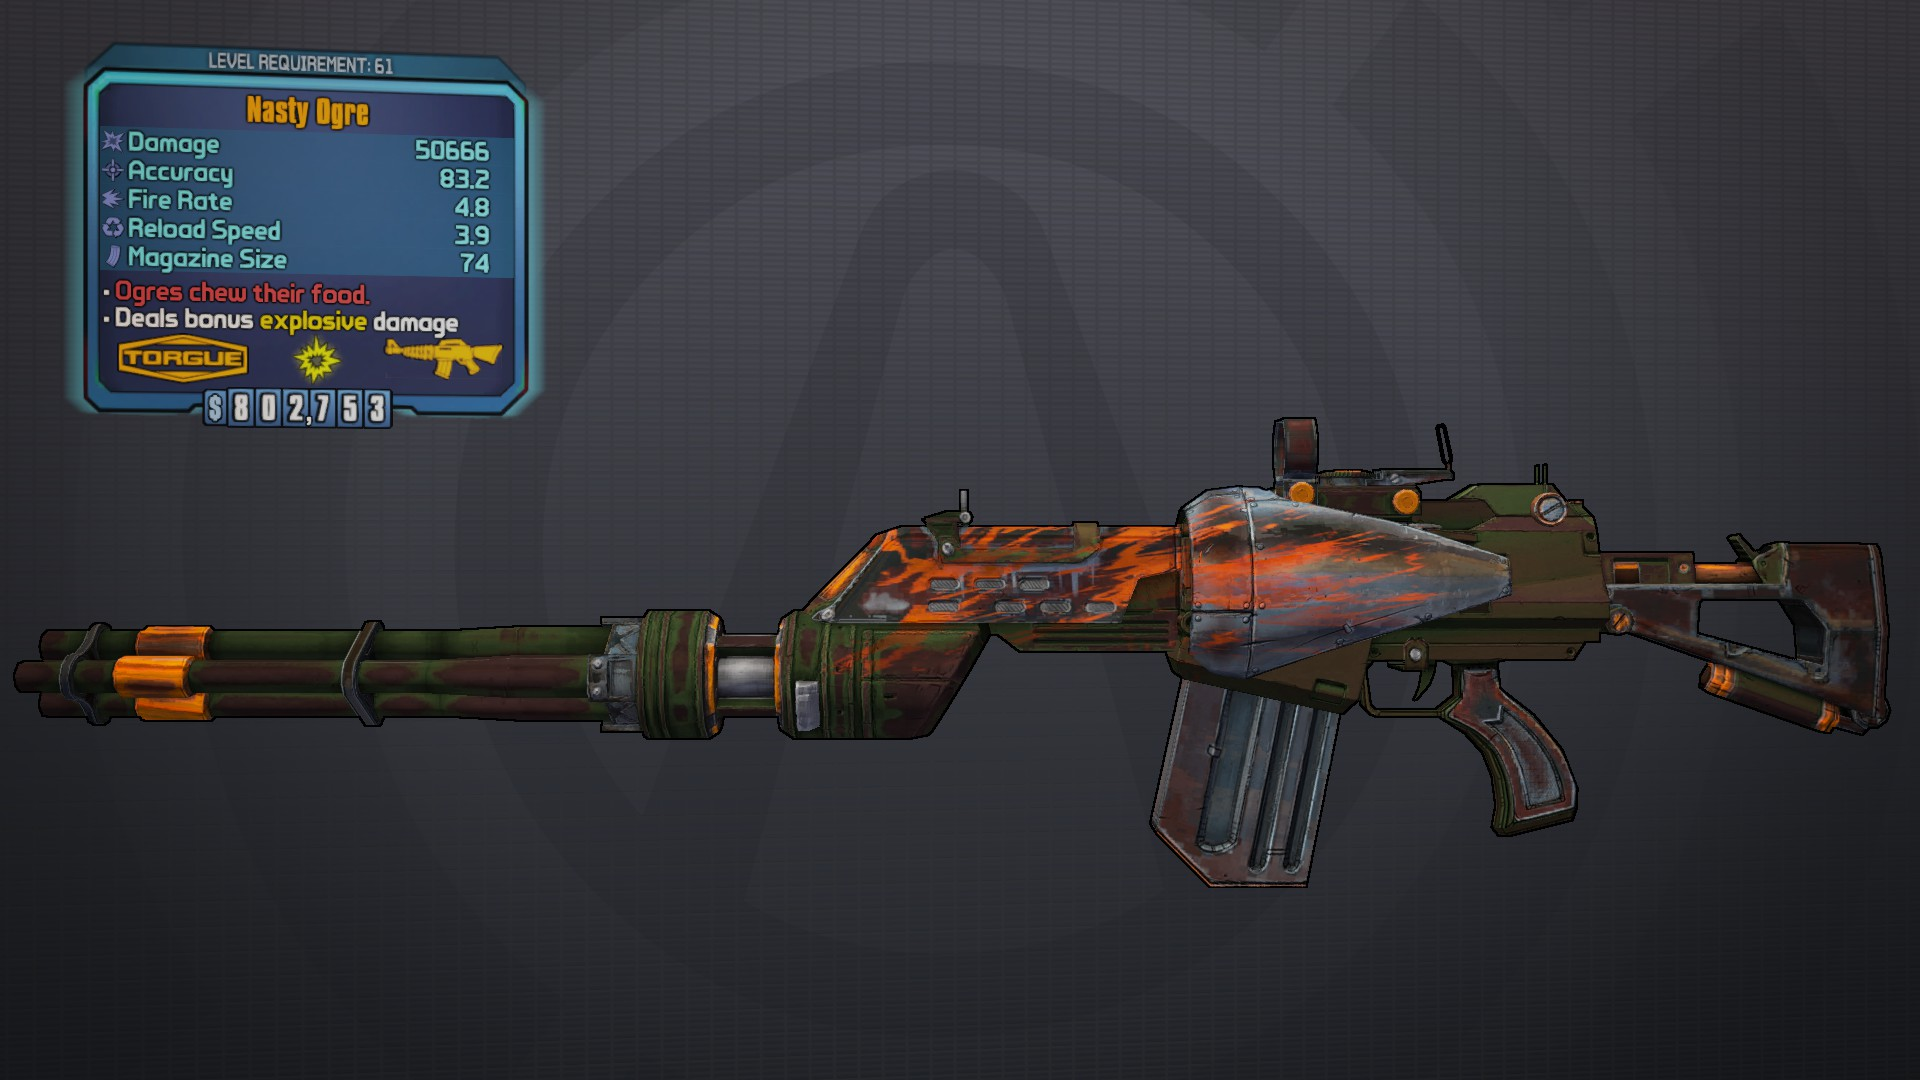 Steam Community :: Guide :: Guide to playing Axton [Level 72